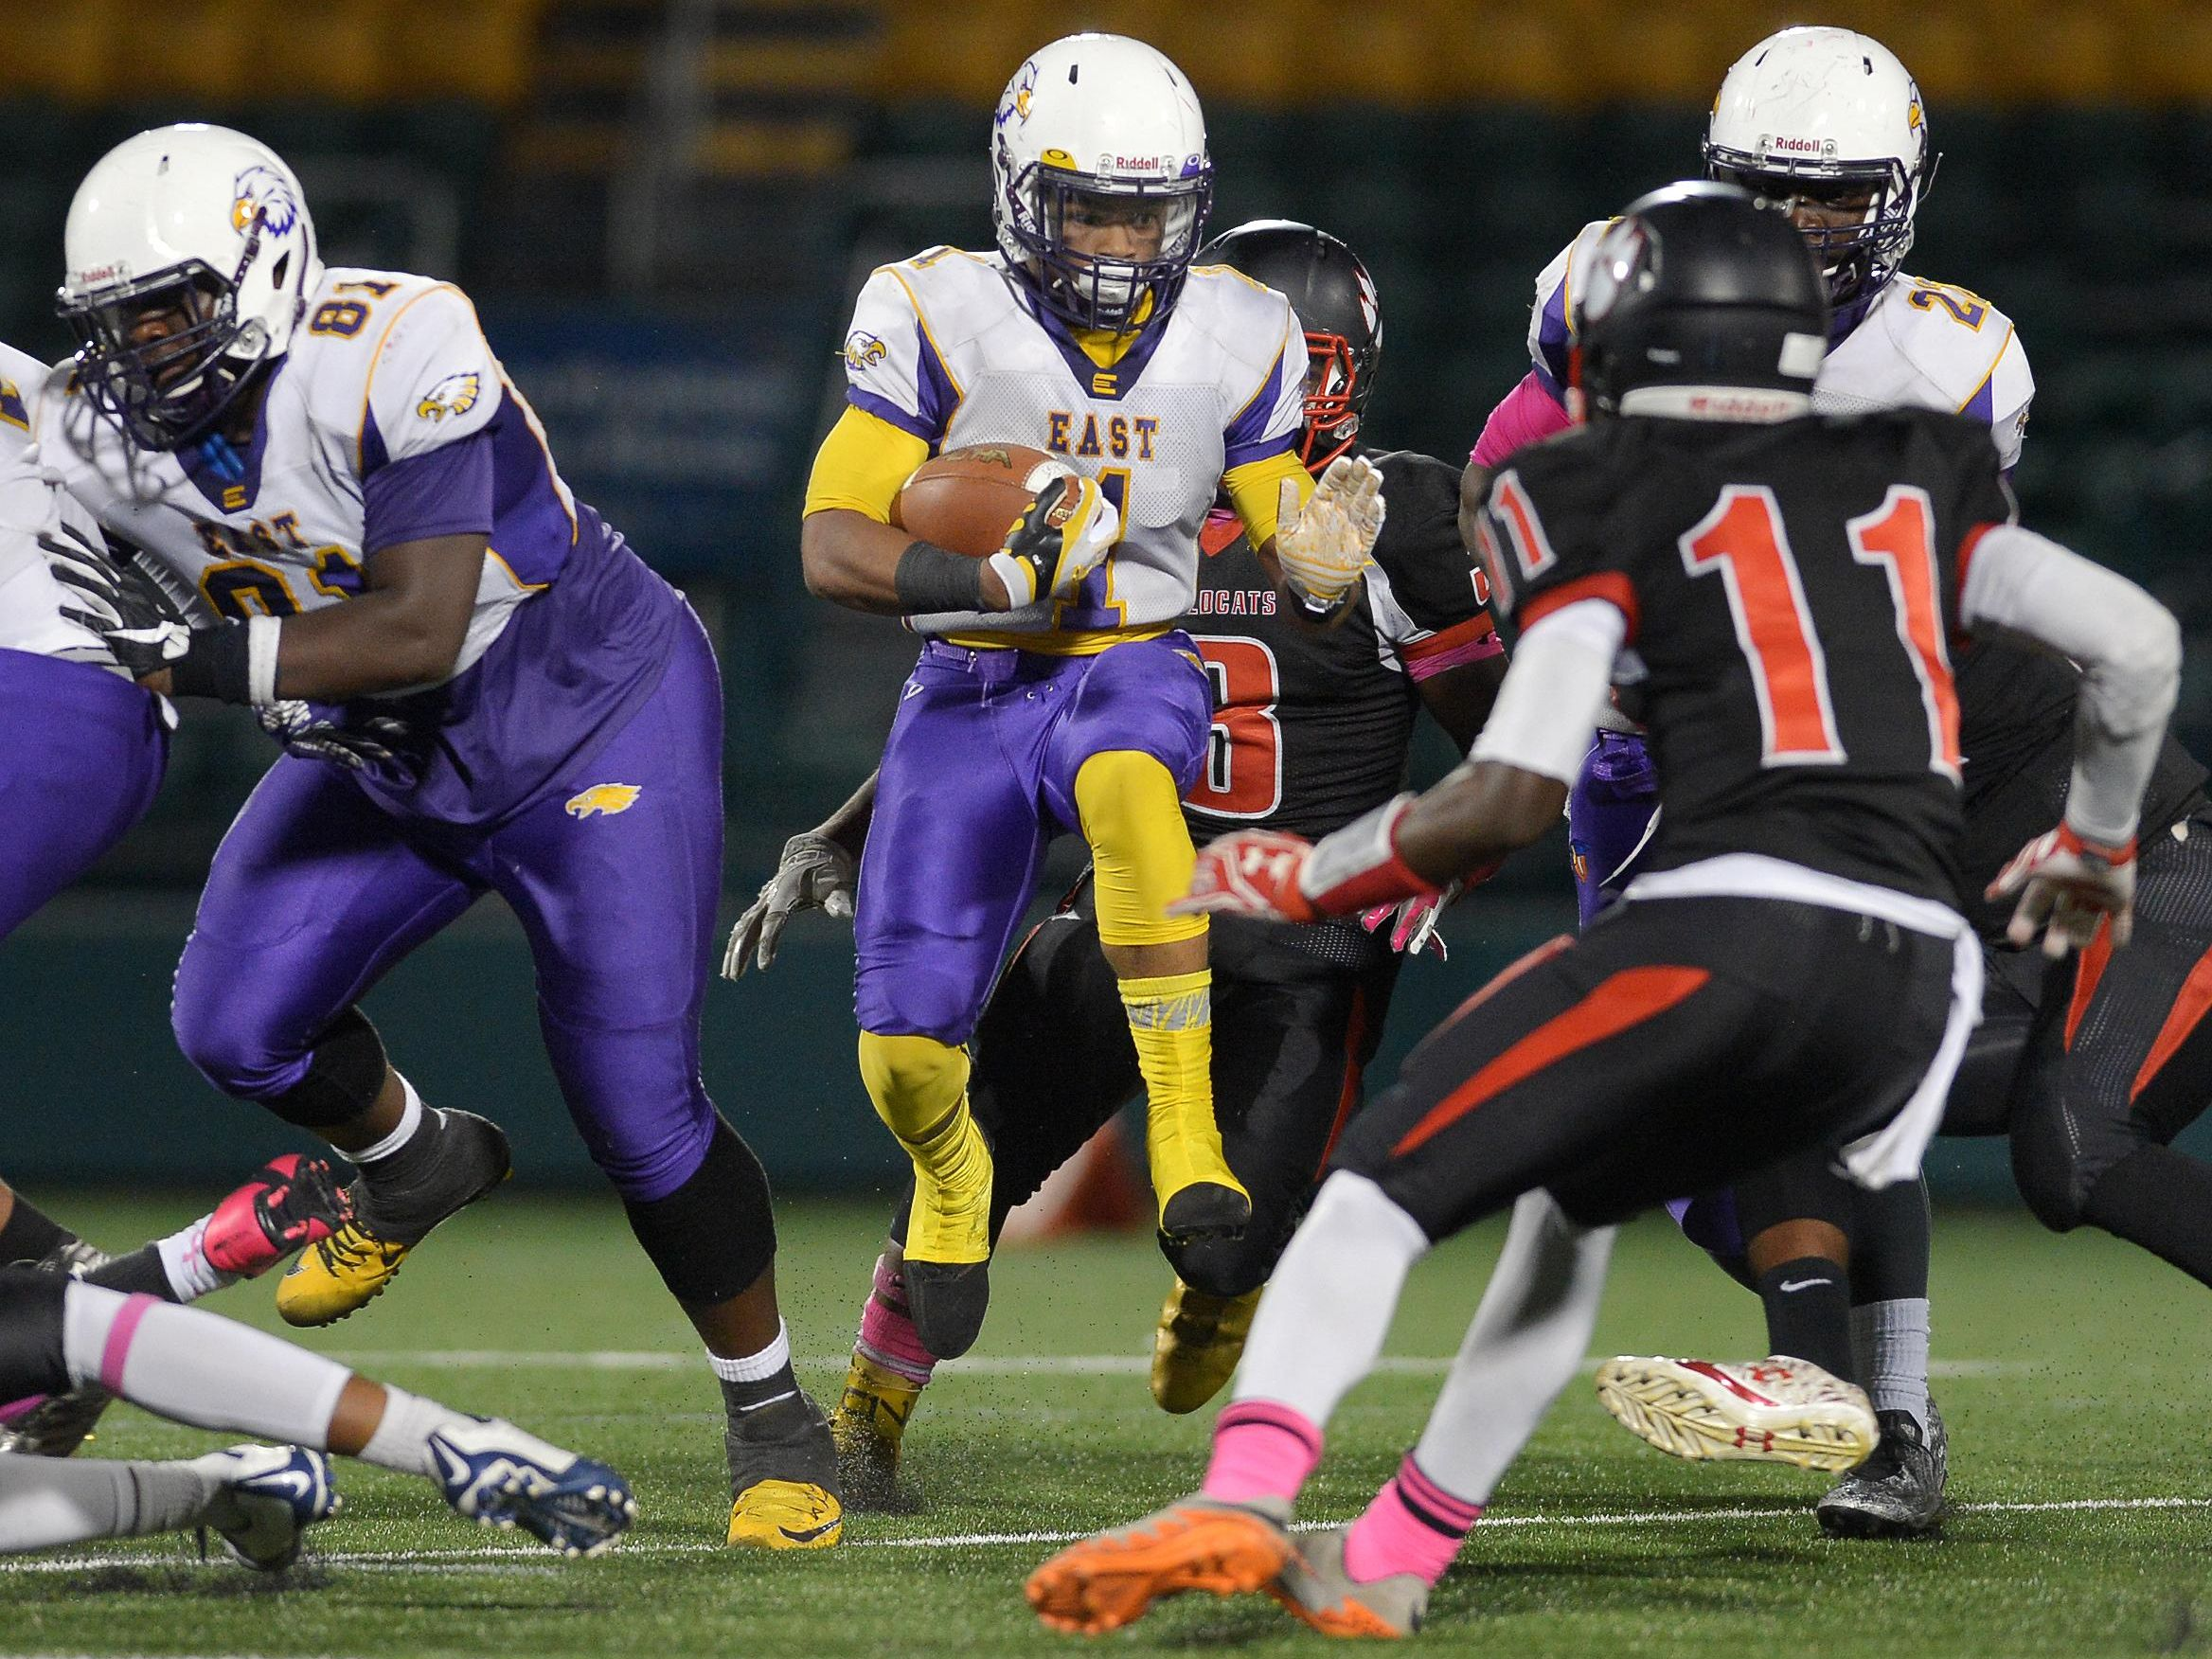 East's Isaiah Collier breaks through a hole in the line of scrimmage during a regular season game at Rhinos Stadium on Friday. East won, 12-10.